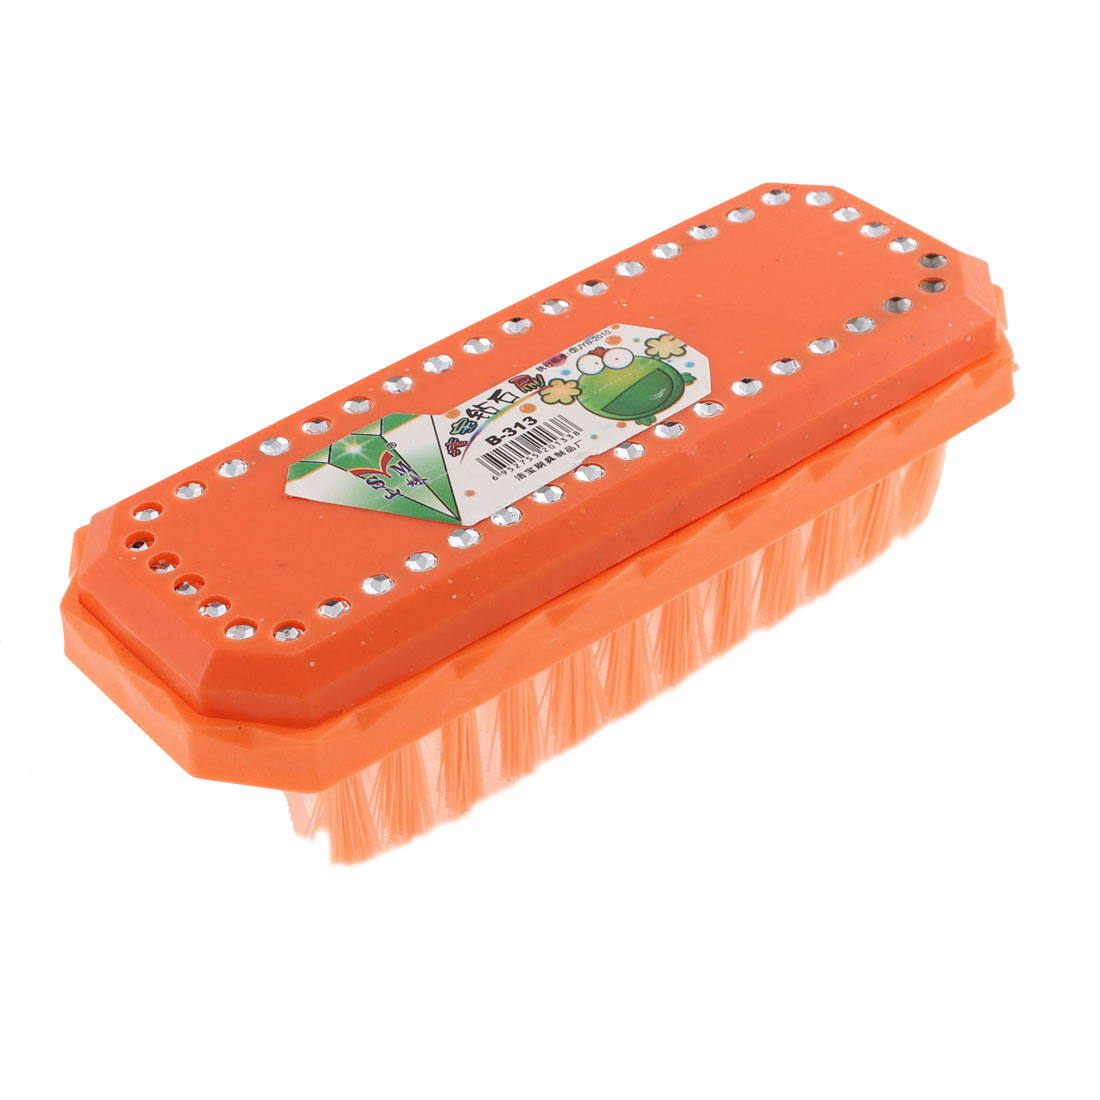 Home Laundry Orange Cleaning Tool Coat Shoes Dress Scrubbing Brush